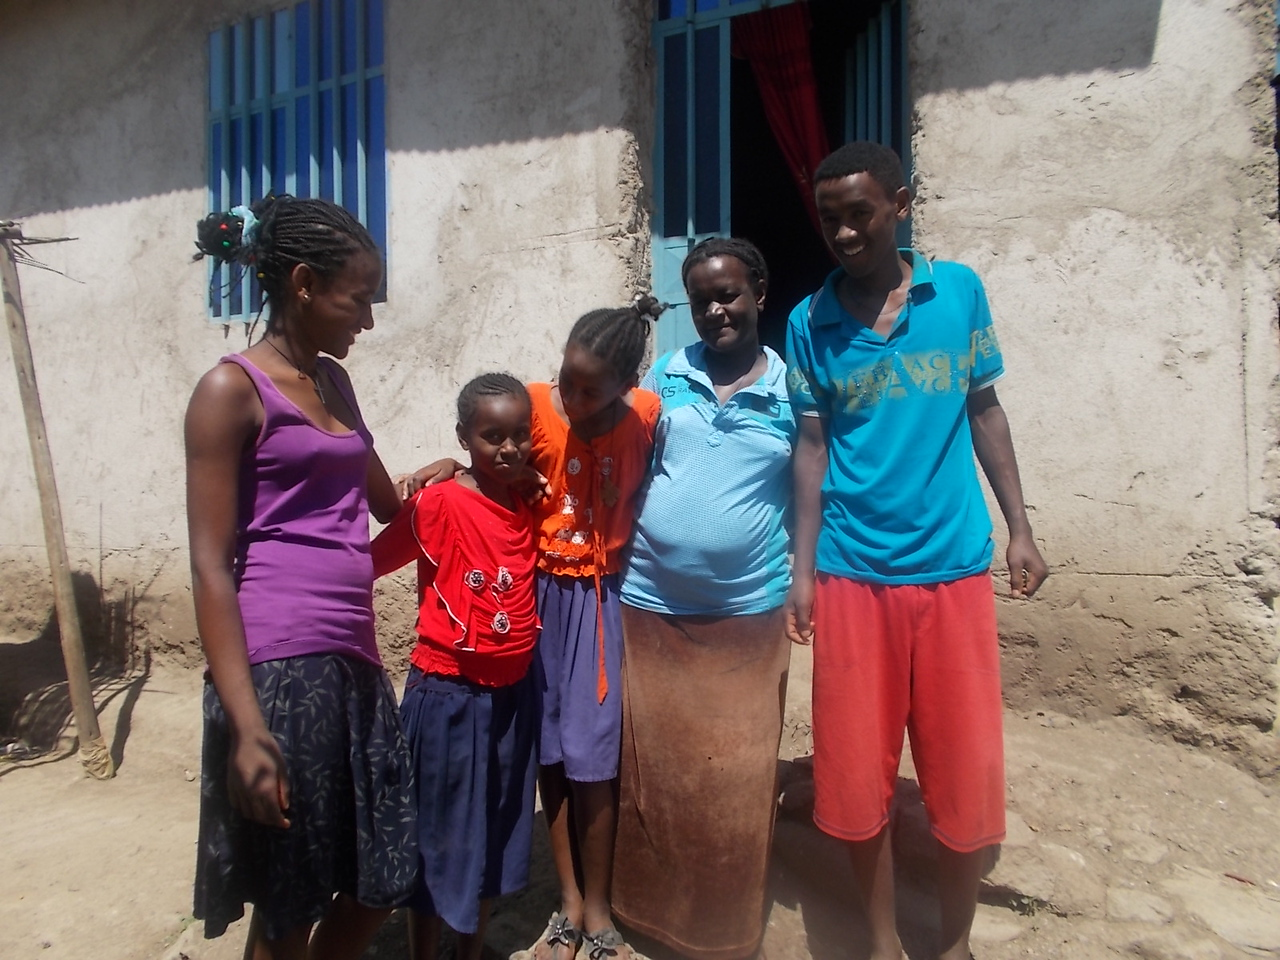 Chali With her Children1